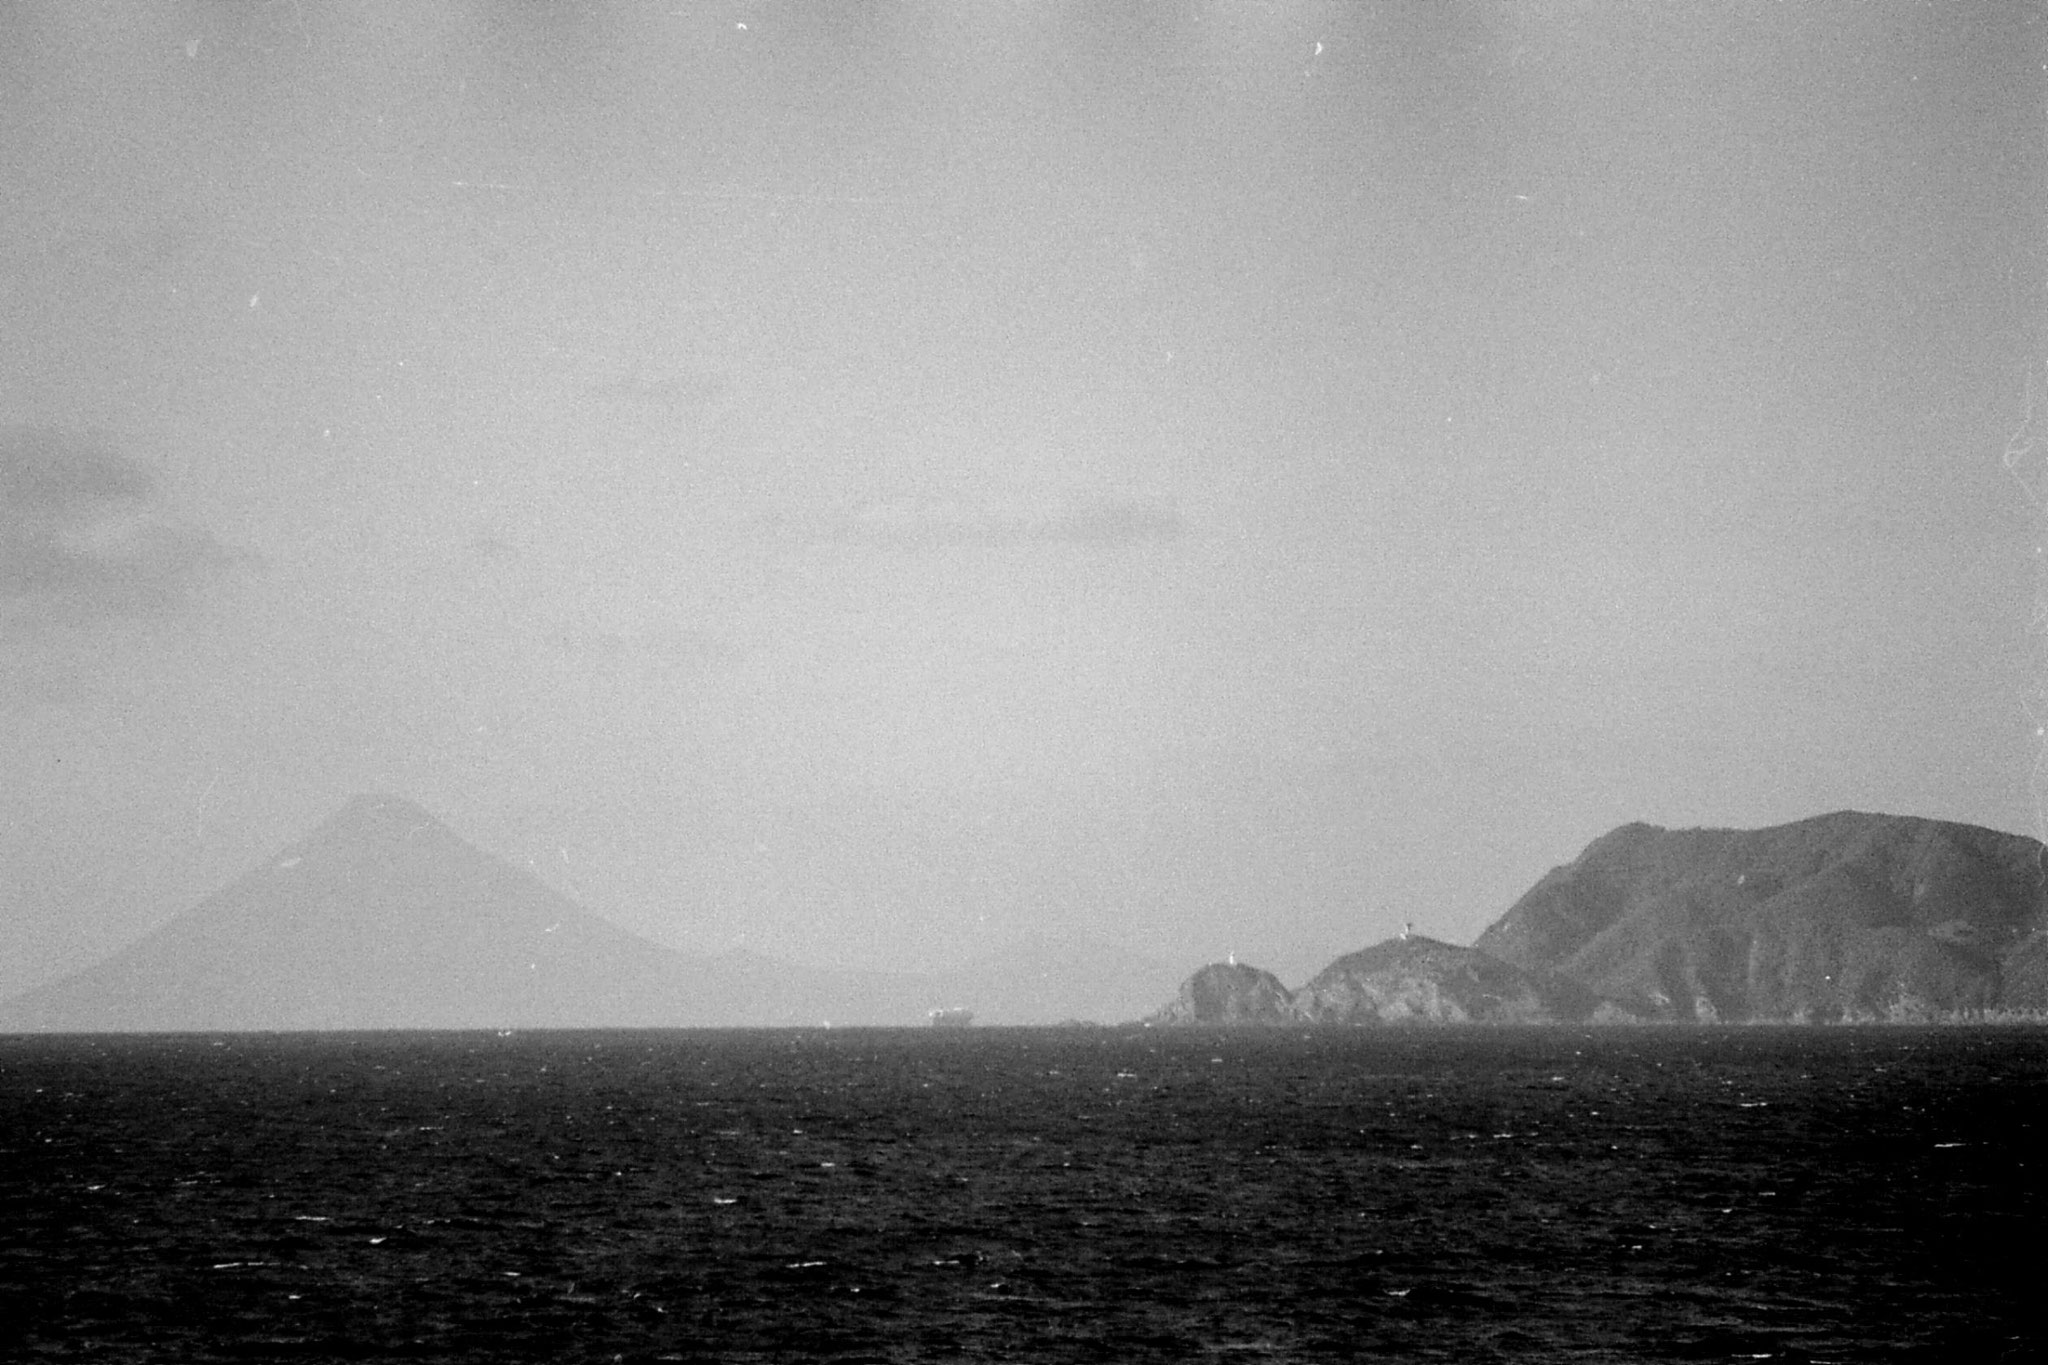 18/12/1988: 8: Sakurajima seen from ship